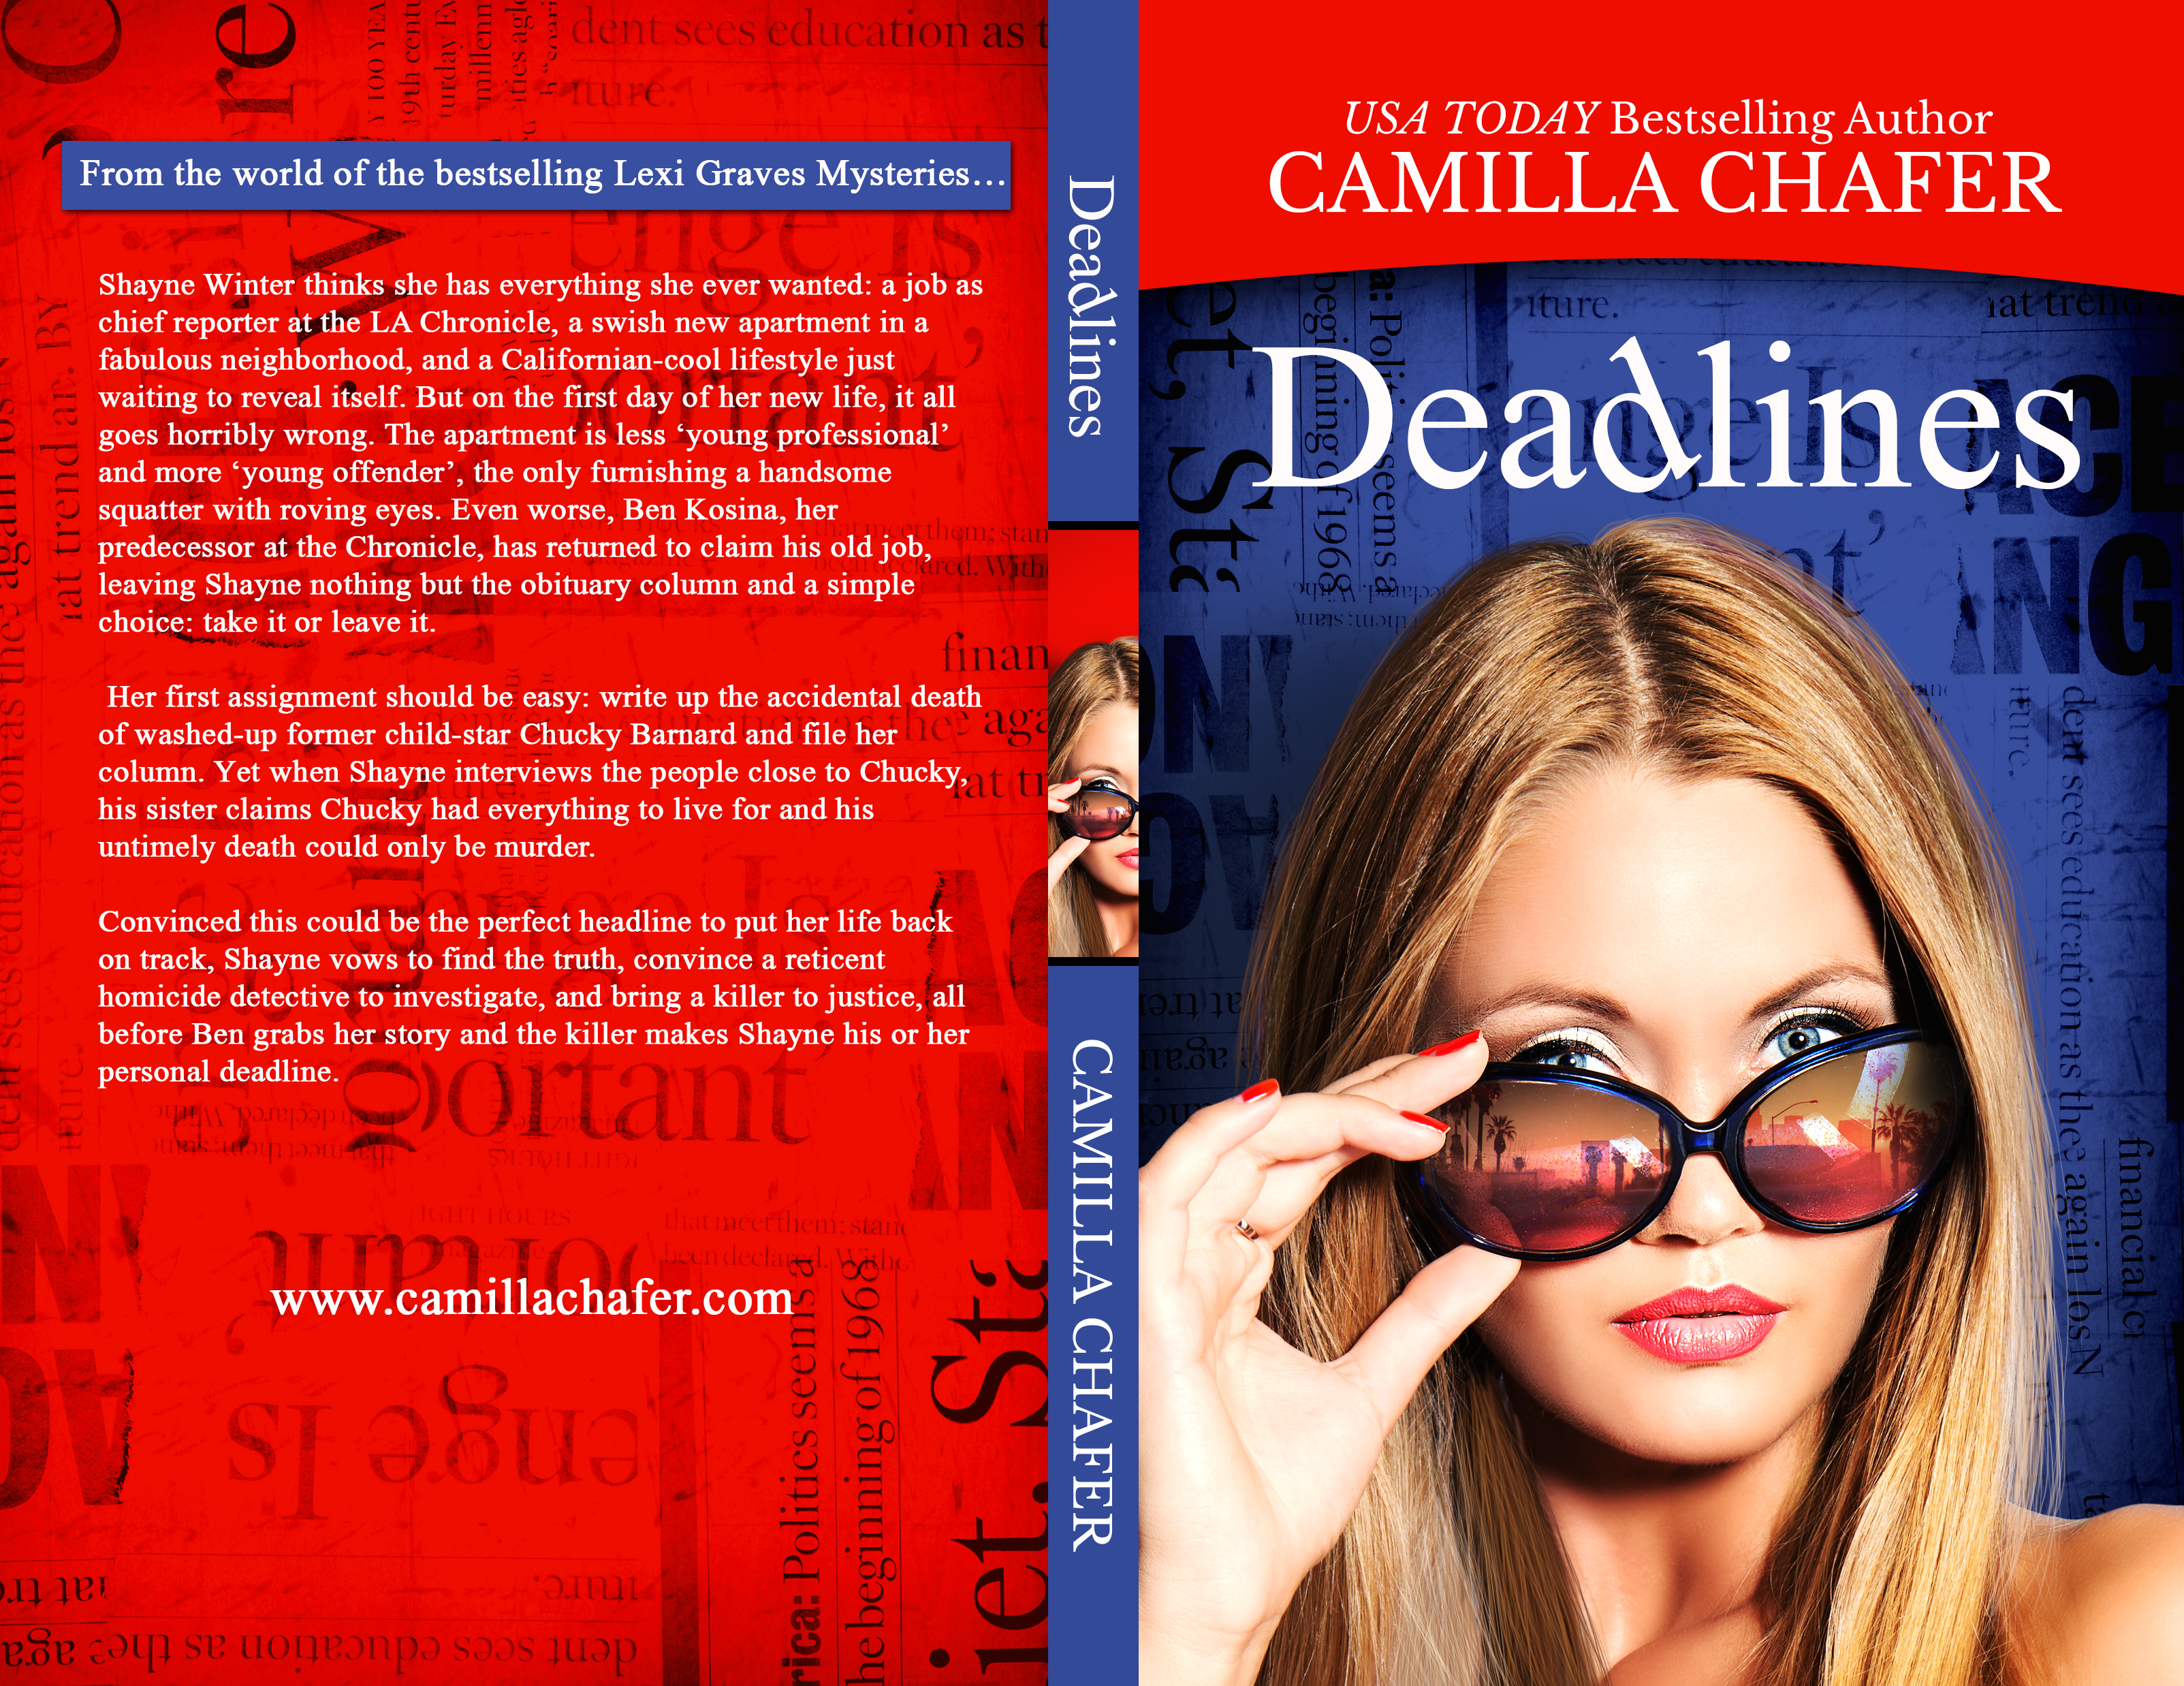 Deadlines full cover 5x8 WRONG PAGE COUNT